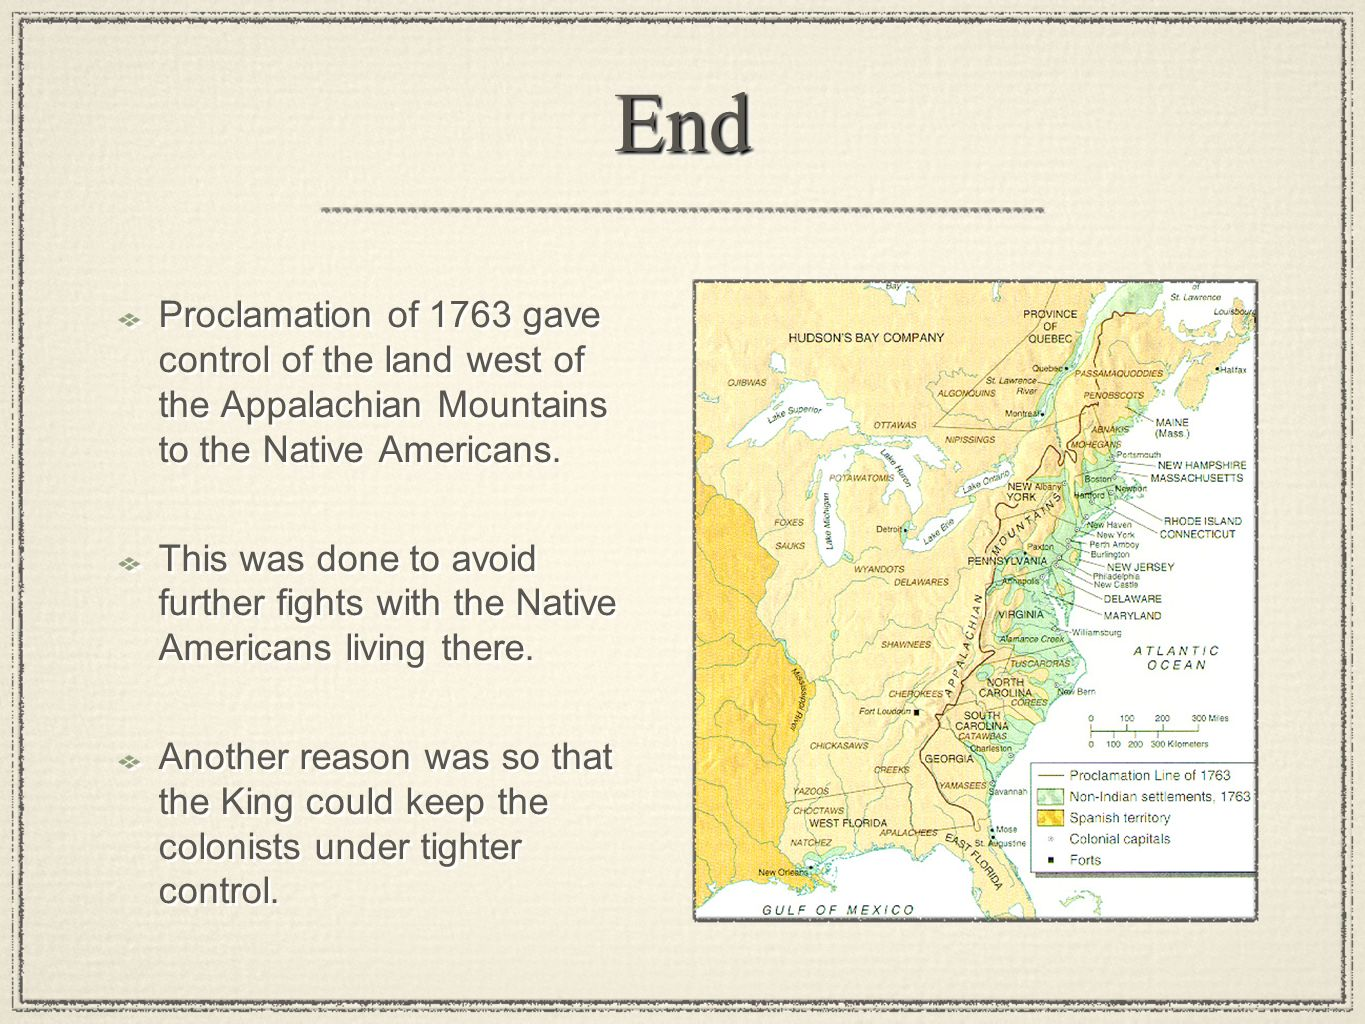 EndEnd Proclamation of 1763 gave control of the land west of the Appalachian Mountains to the Native Americans.